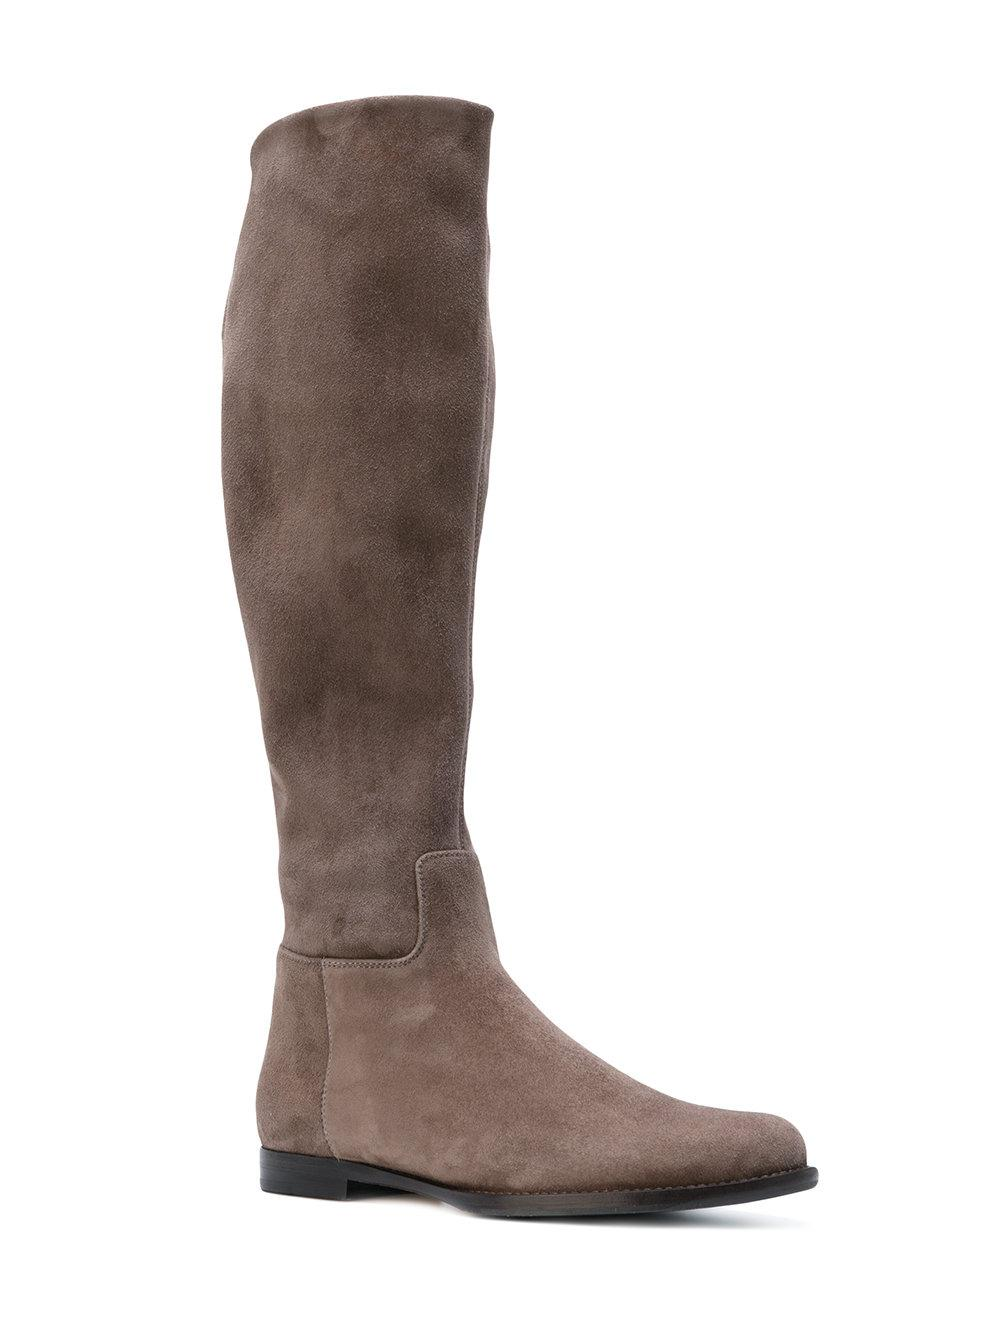 cut-out ankle boots - Brown Unützer DxmT67RnZV